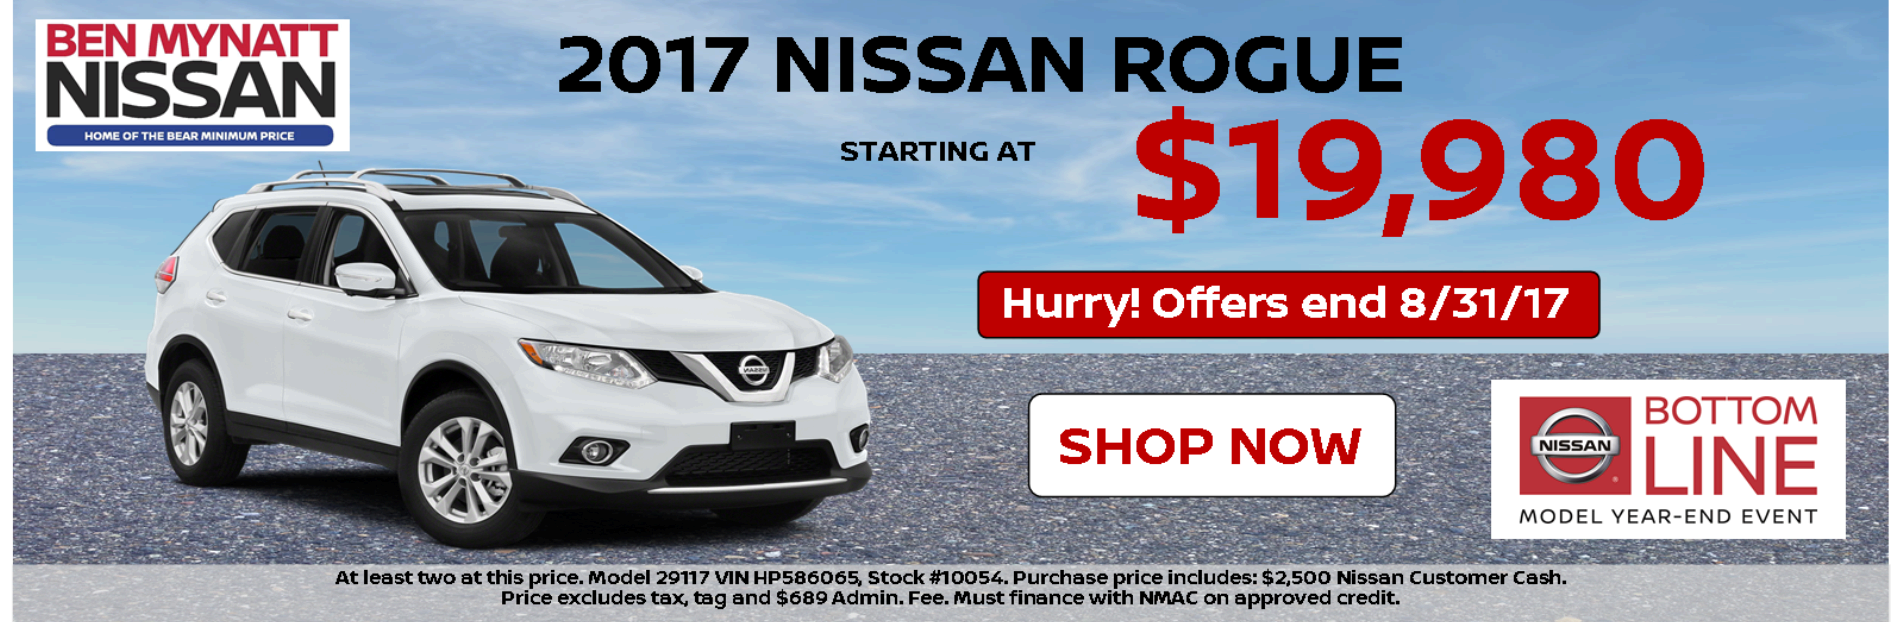 Ben Mynatt Nissan Is Your Salisbury NC Nissan Dealer